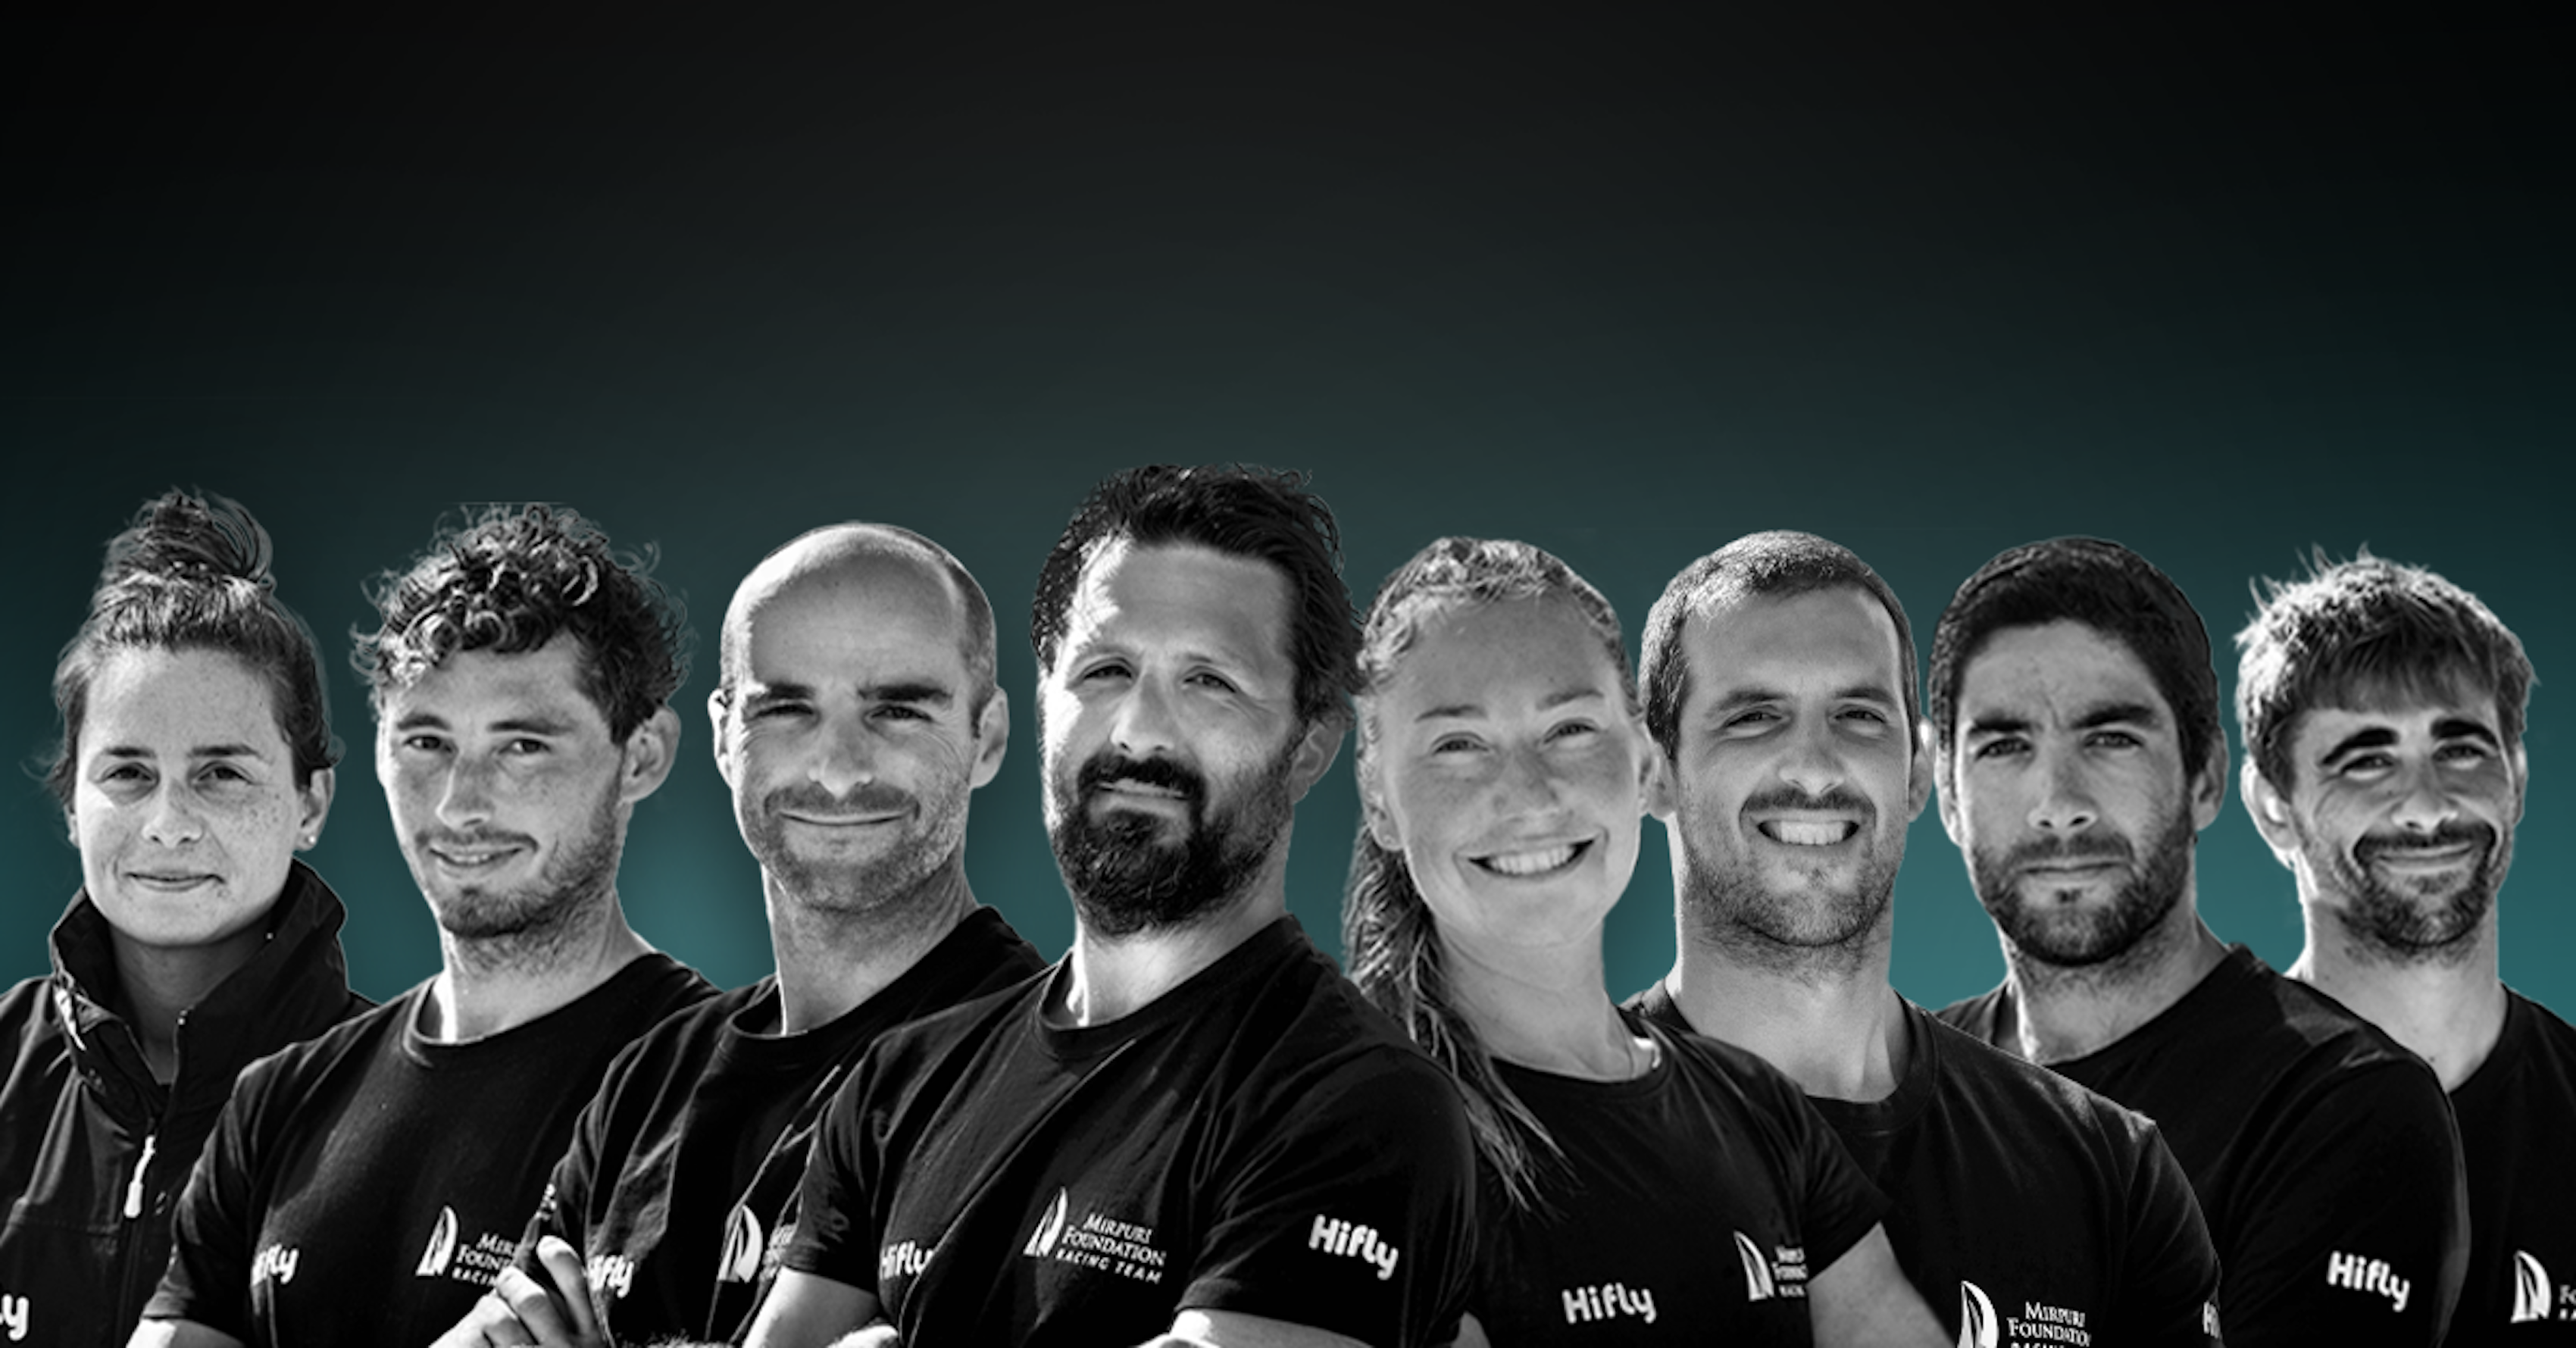 Meet our crew for The Ocean Race Europe